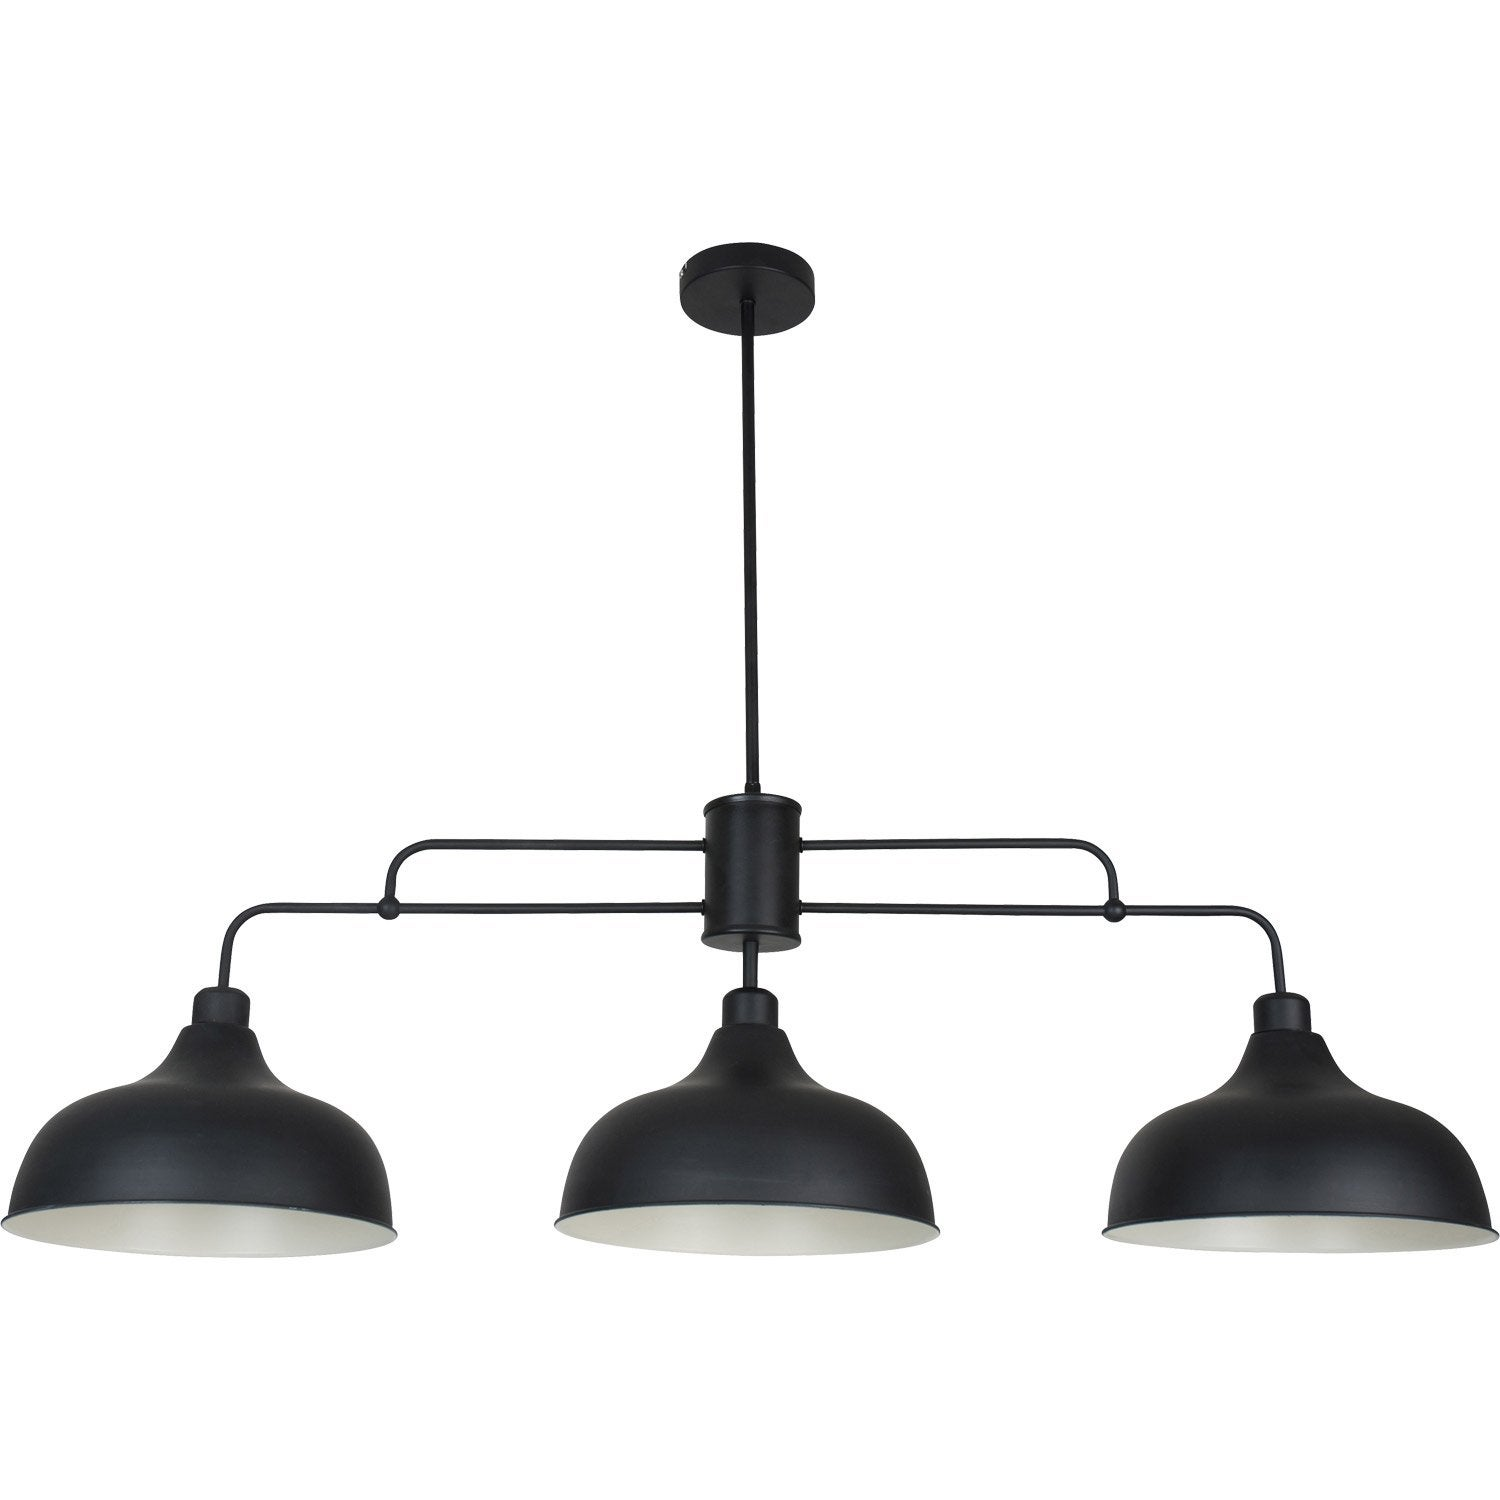 Suspension e27 style industriel lincoln m tal noir 3 x 40 - Ampoule lumiere noire leroy merlin ...